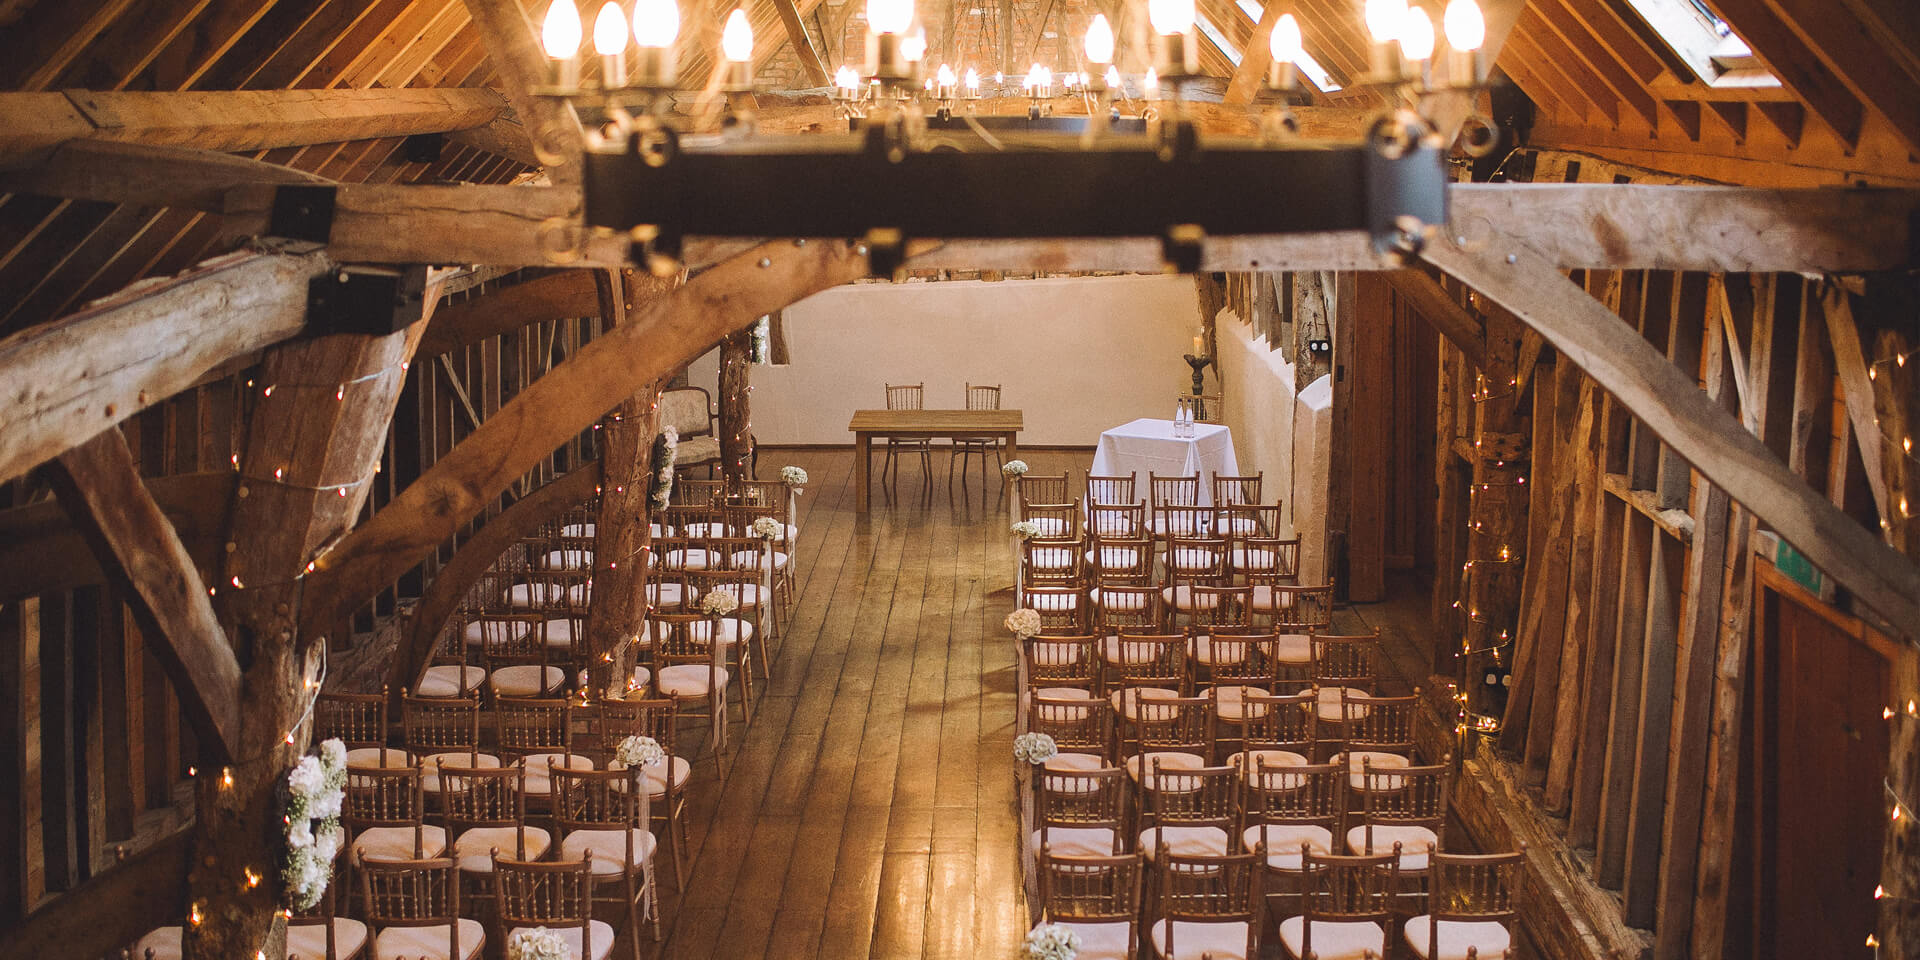 The couple held their wedding ceremony in the intimate Rickety Barn decorated with white flowers